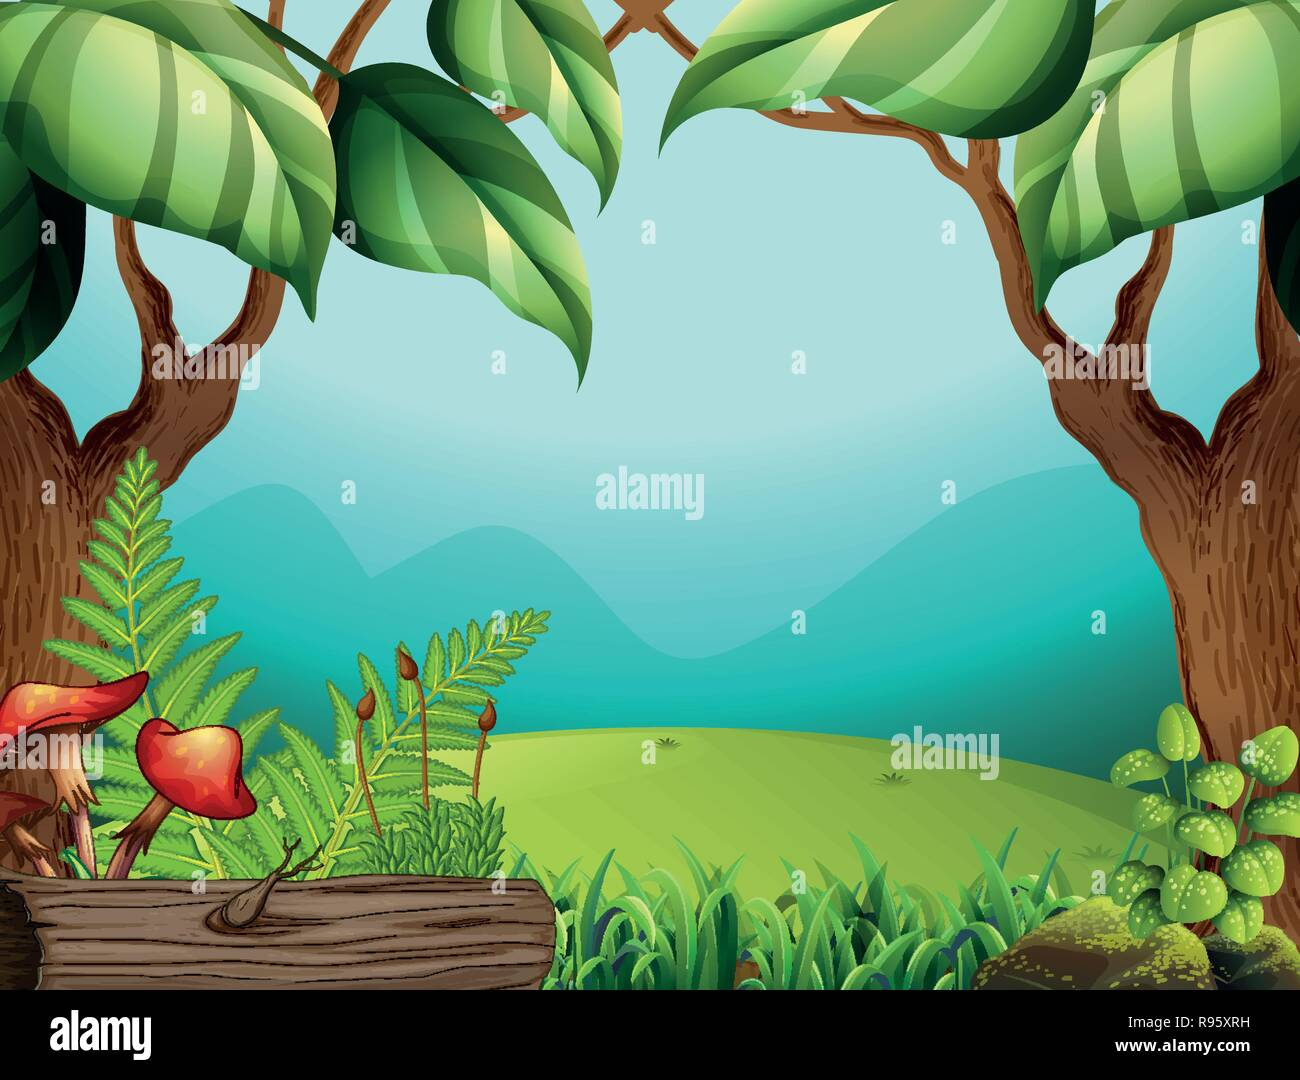 A green jungle template illustration - Stock Image